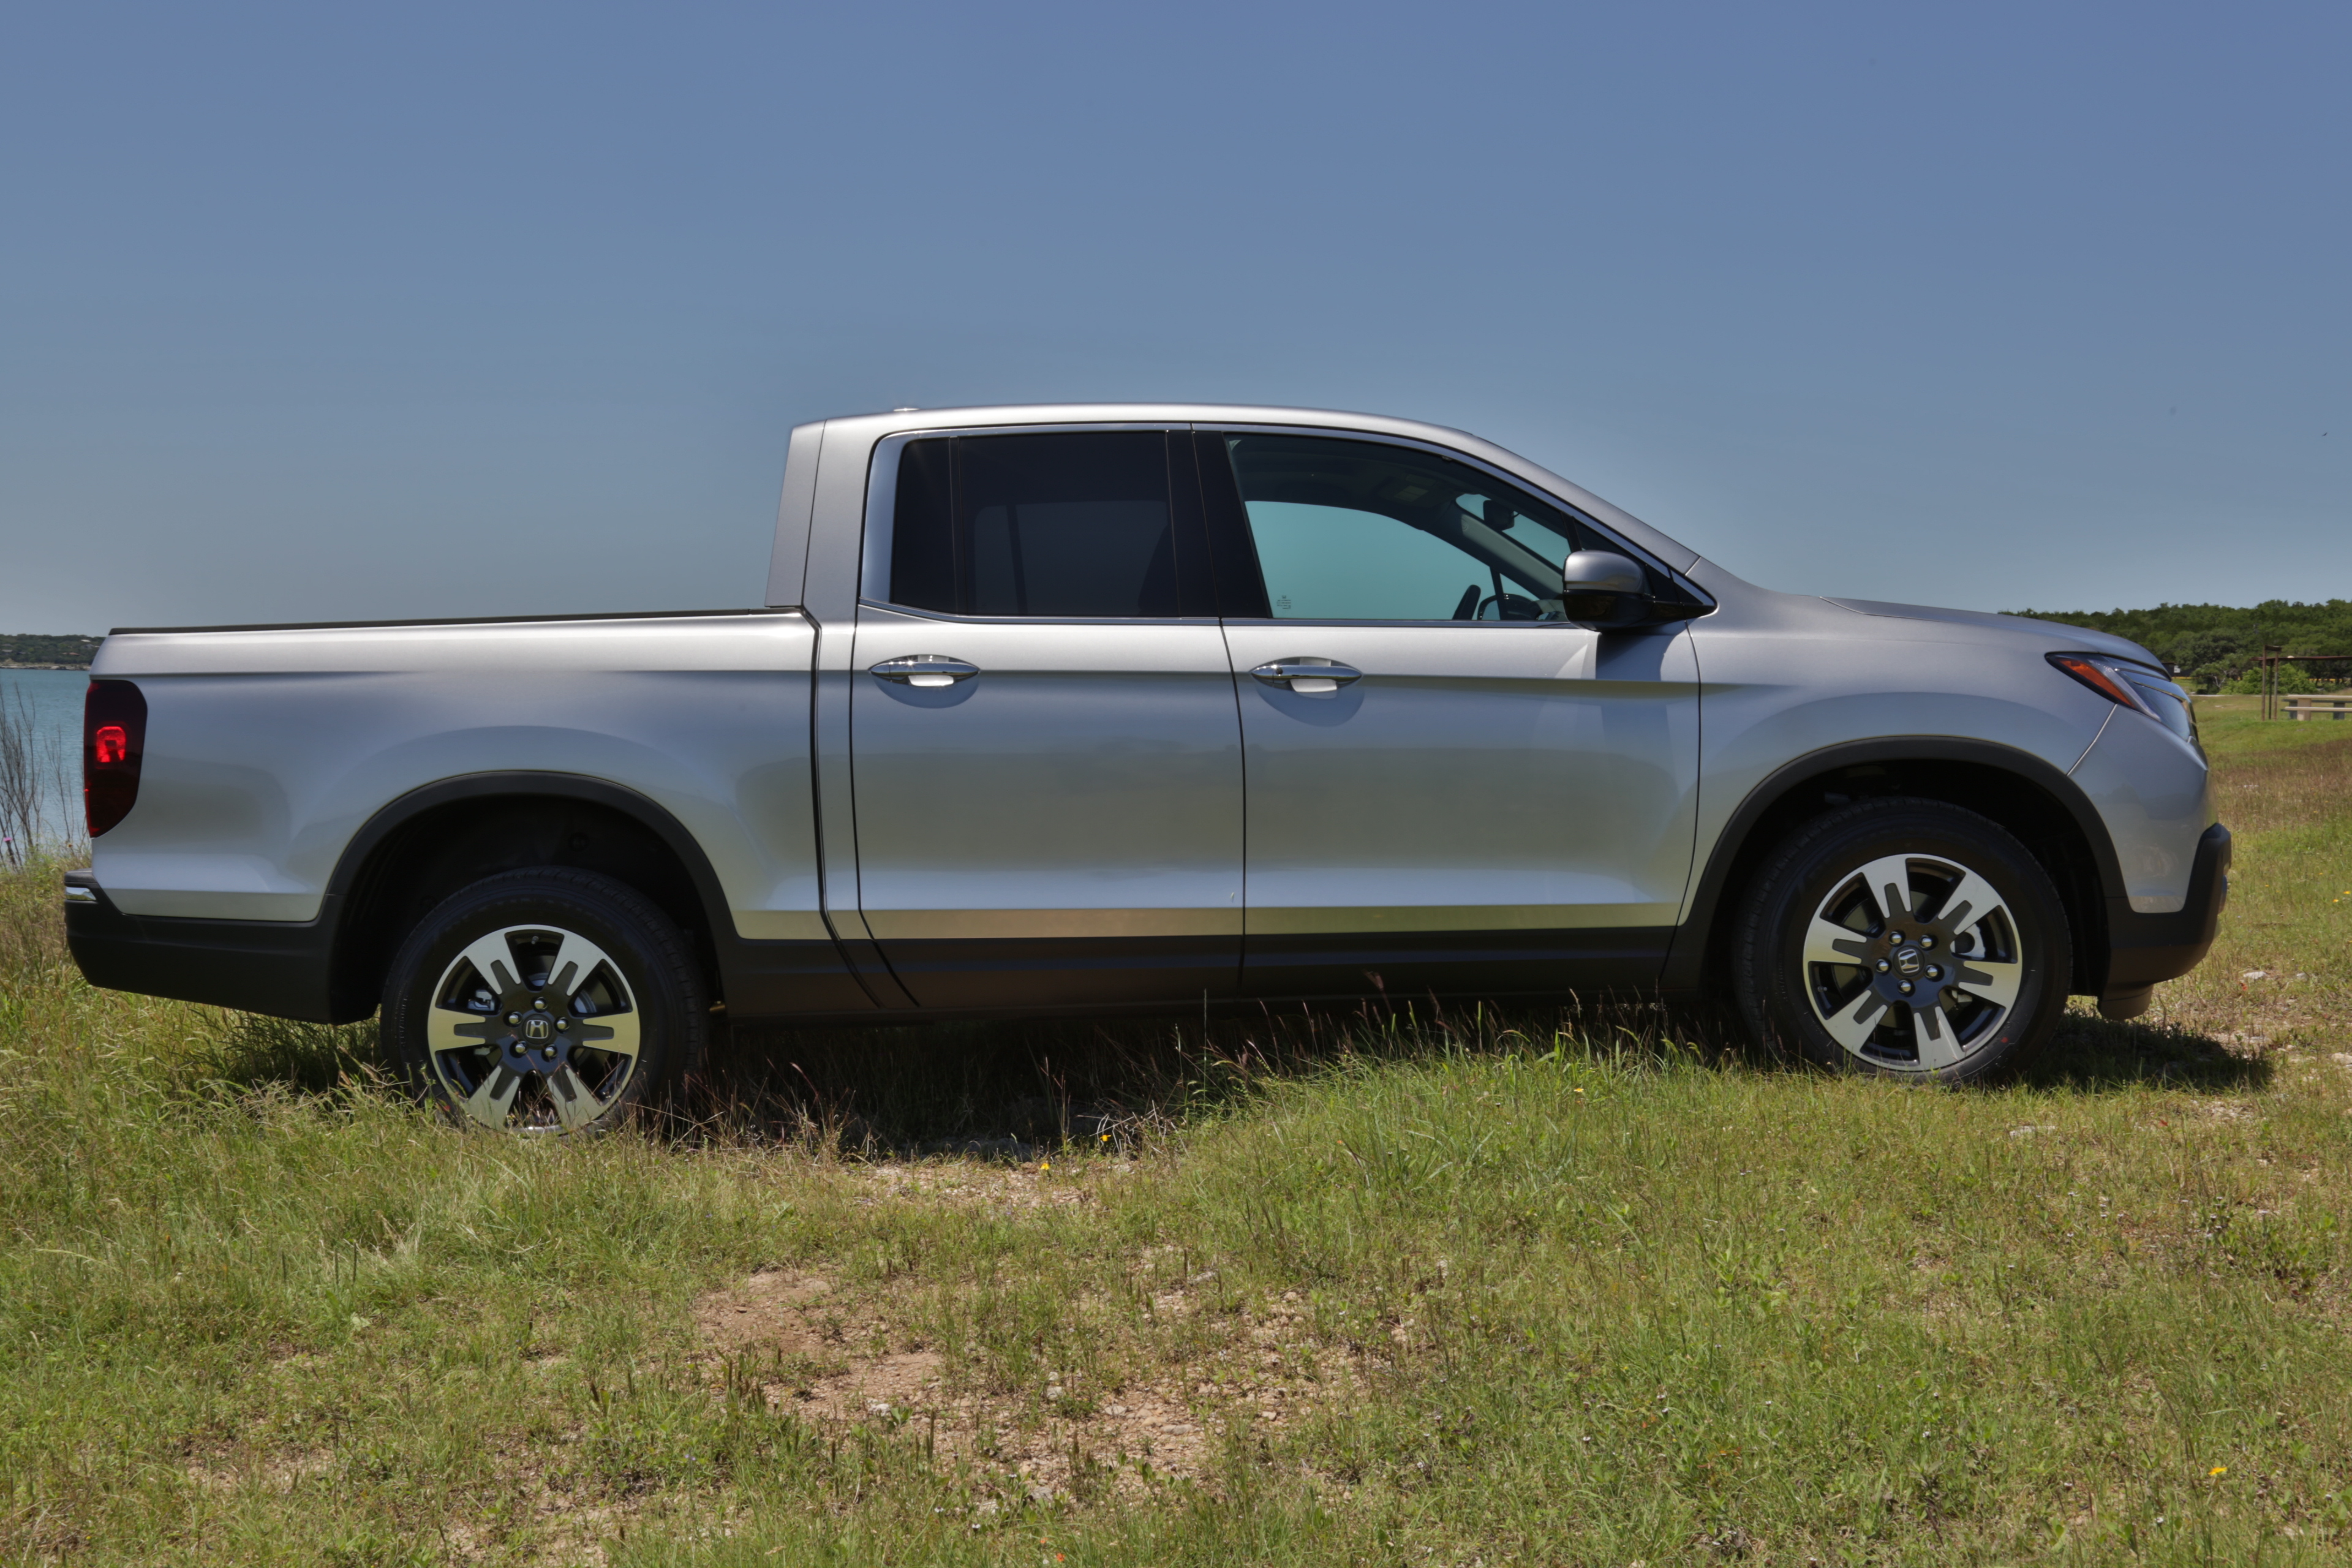 2017 Honda Ridgeline Towing Review Boat With Profile